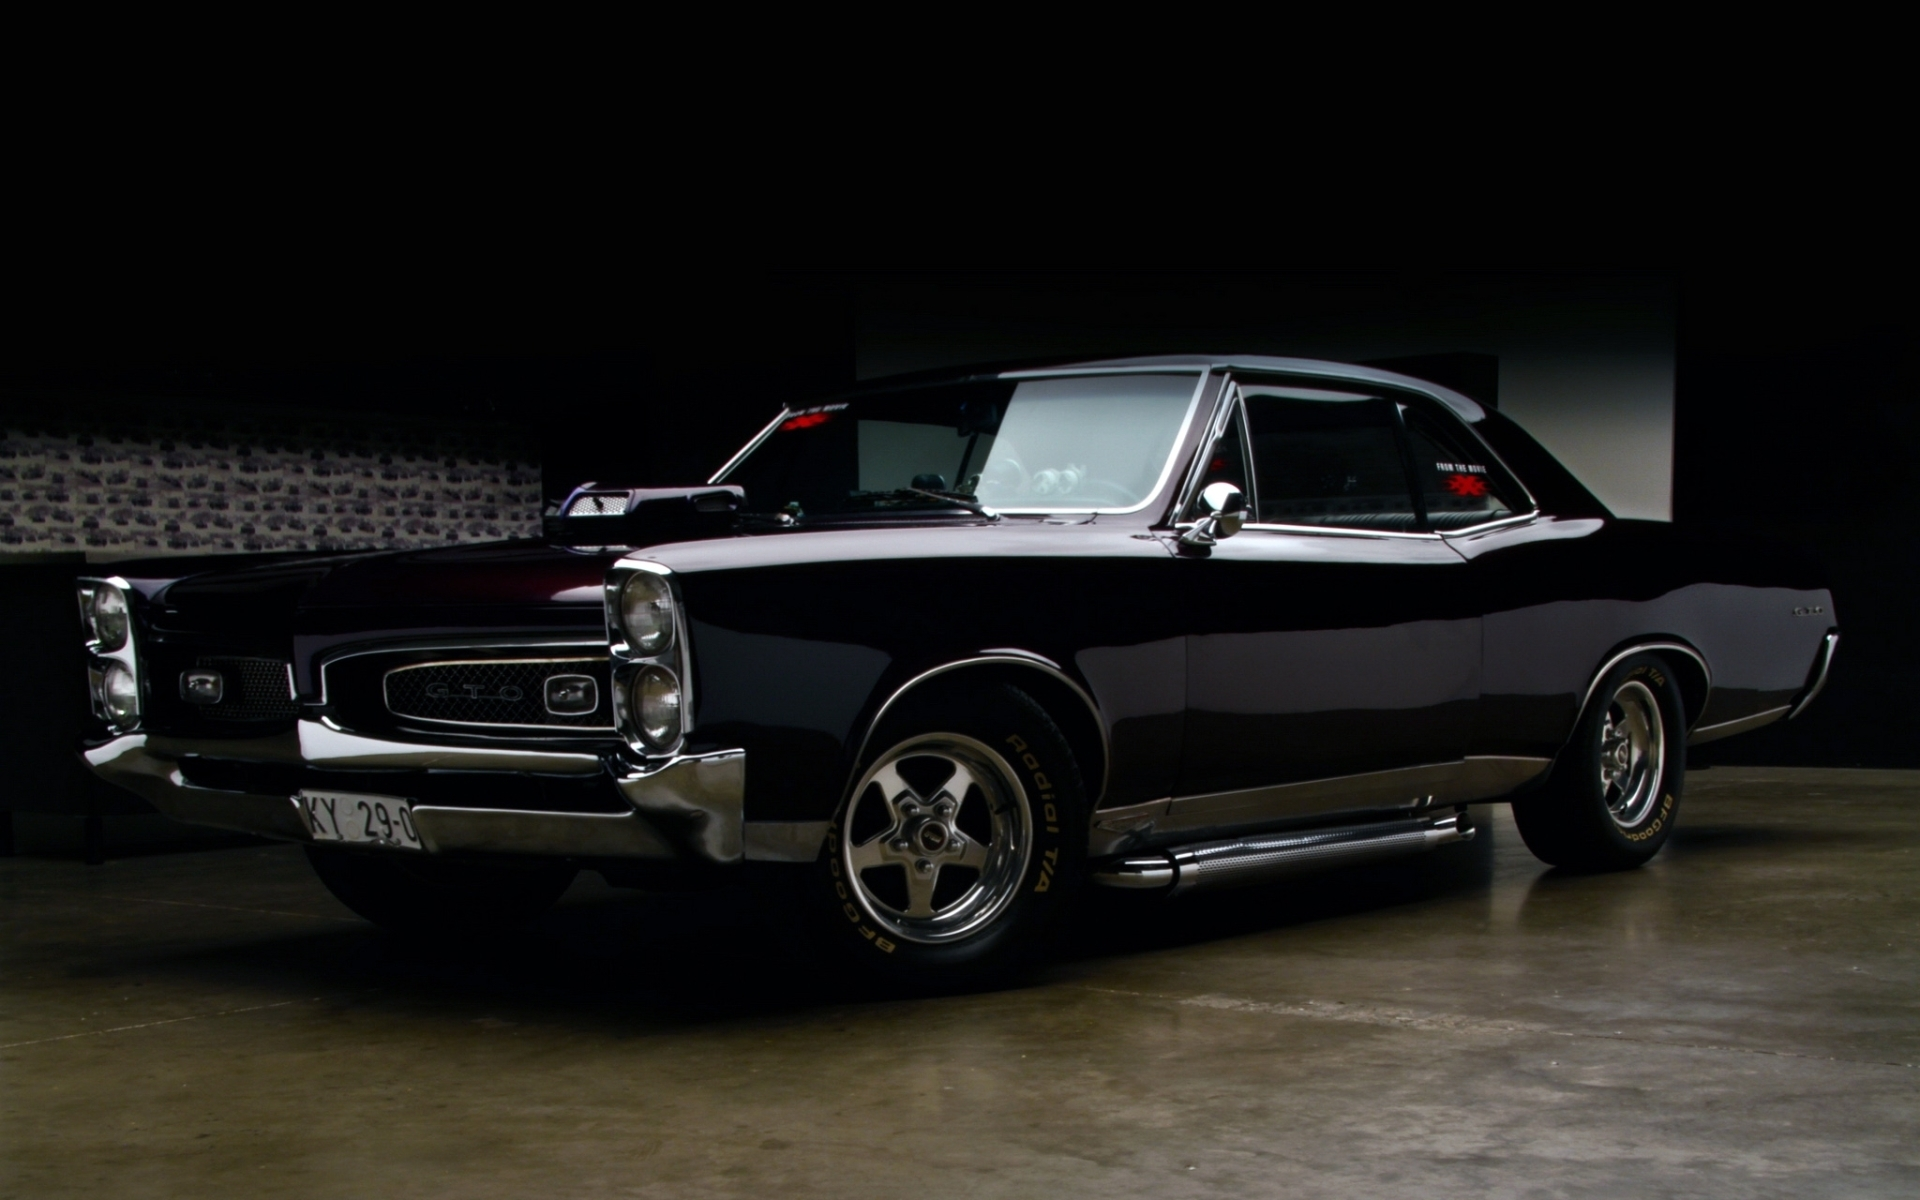 Pontiac Gto Full Hd Wallpaper And Background Image -2591